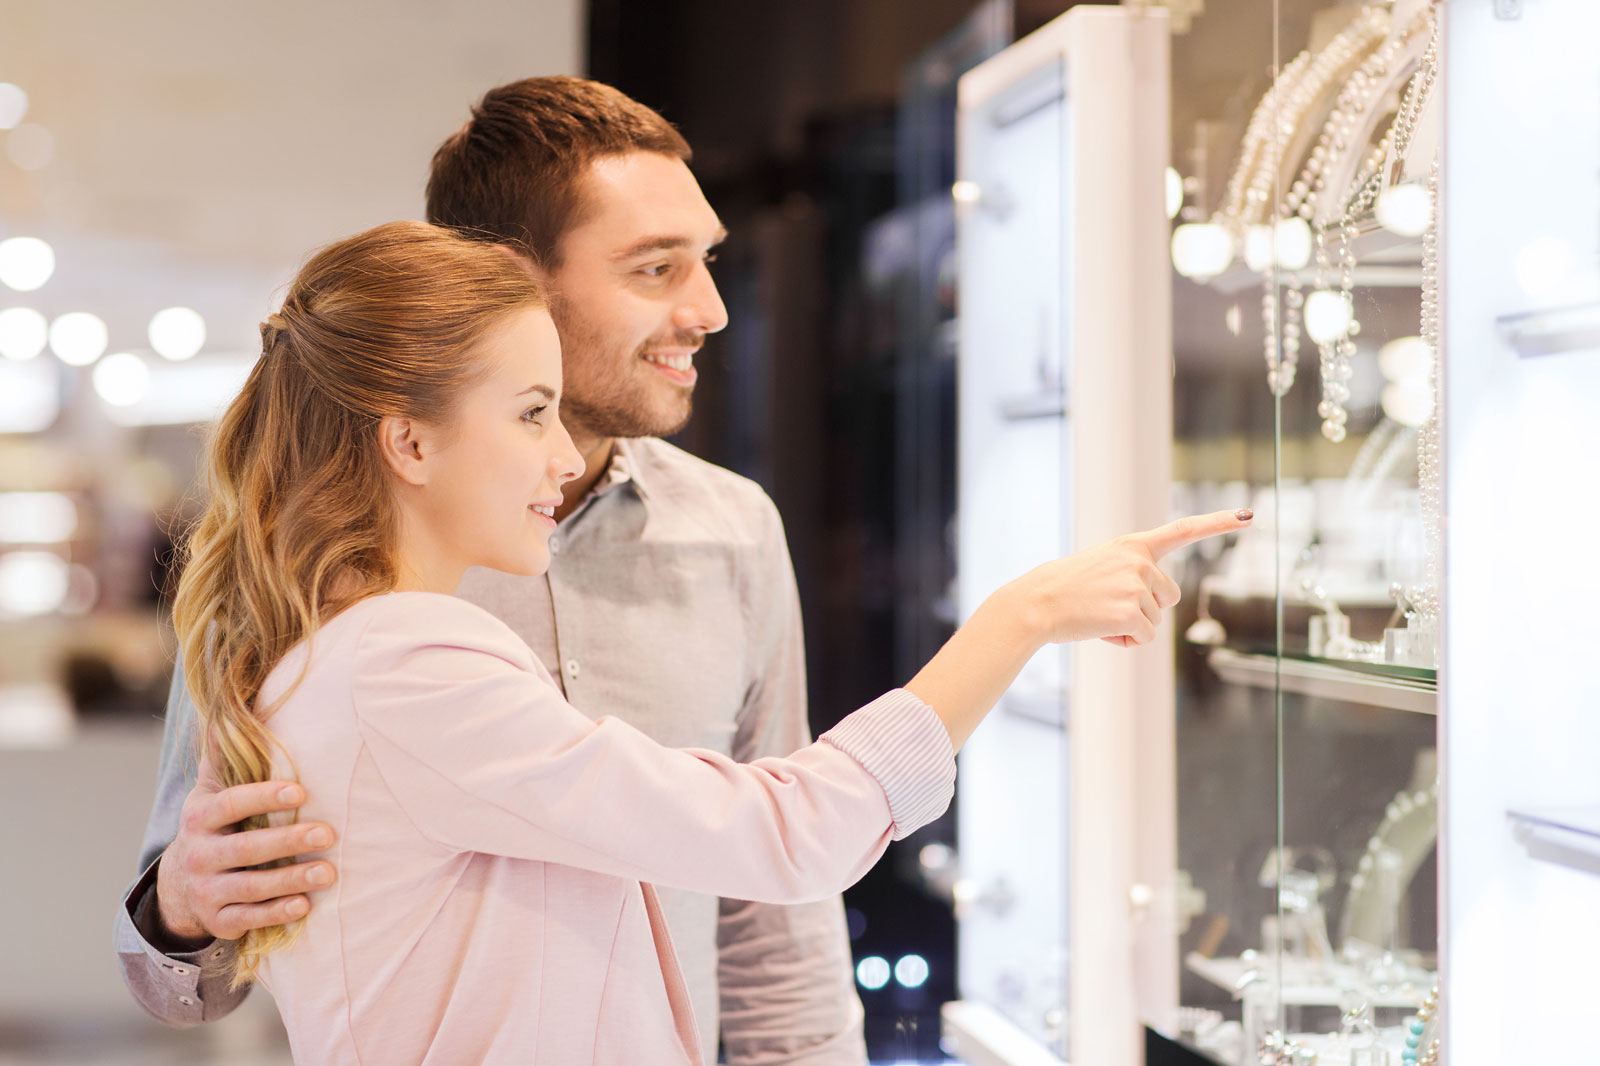 Couple Looking To Buy Jewelry   How To Pick Out The Best Jewelry Gifts For A Loved One